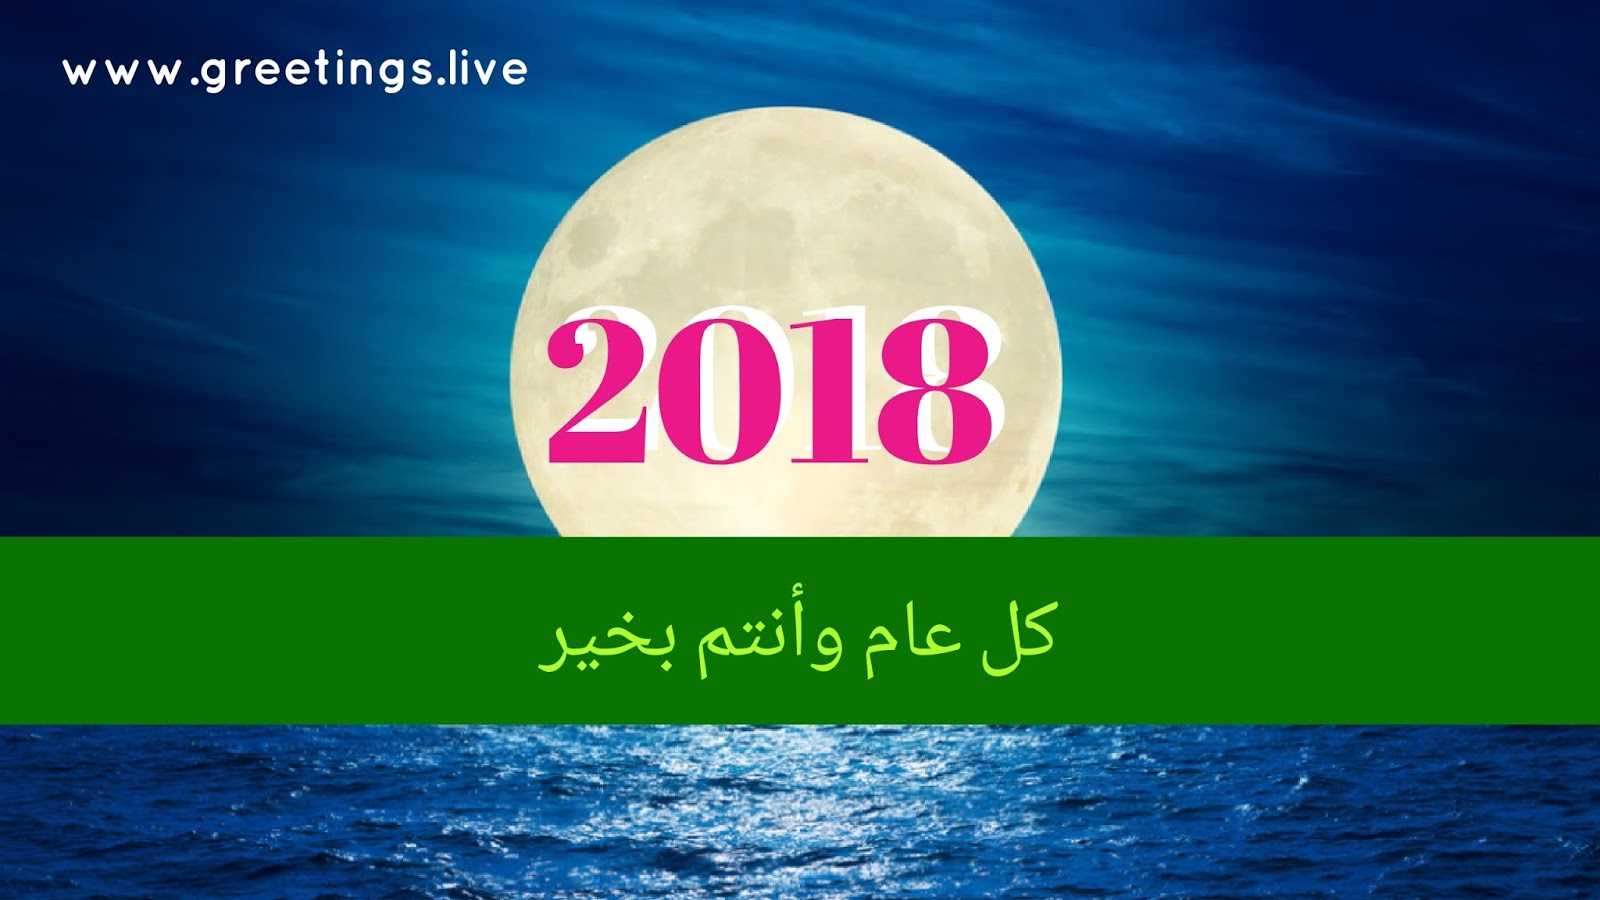 2018 New Year Wishes Greetings New Year Wishes 2018 In Arabic Language